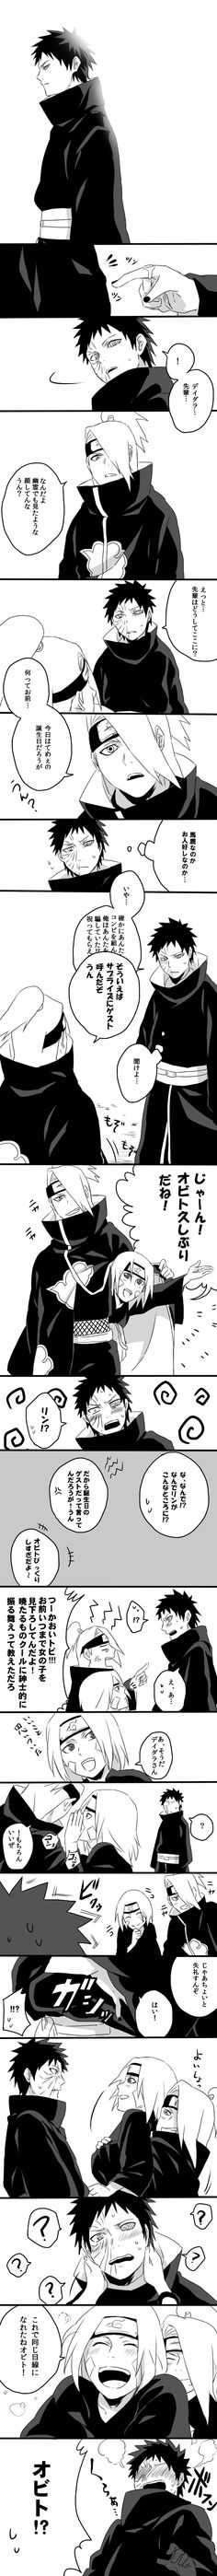 Can't read it but I love it :)  I can definitely imagine Dei tormenting Obito in the afterlife